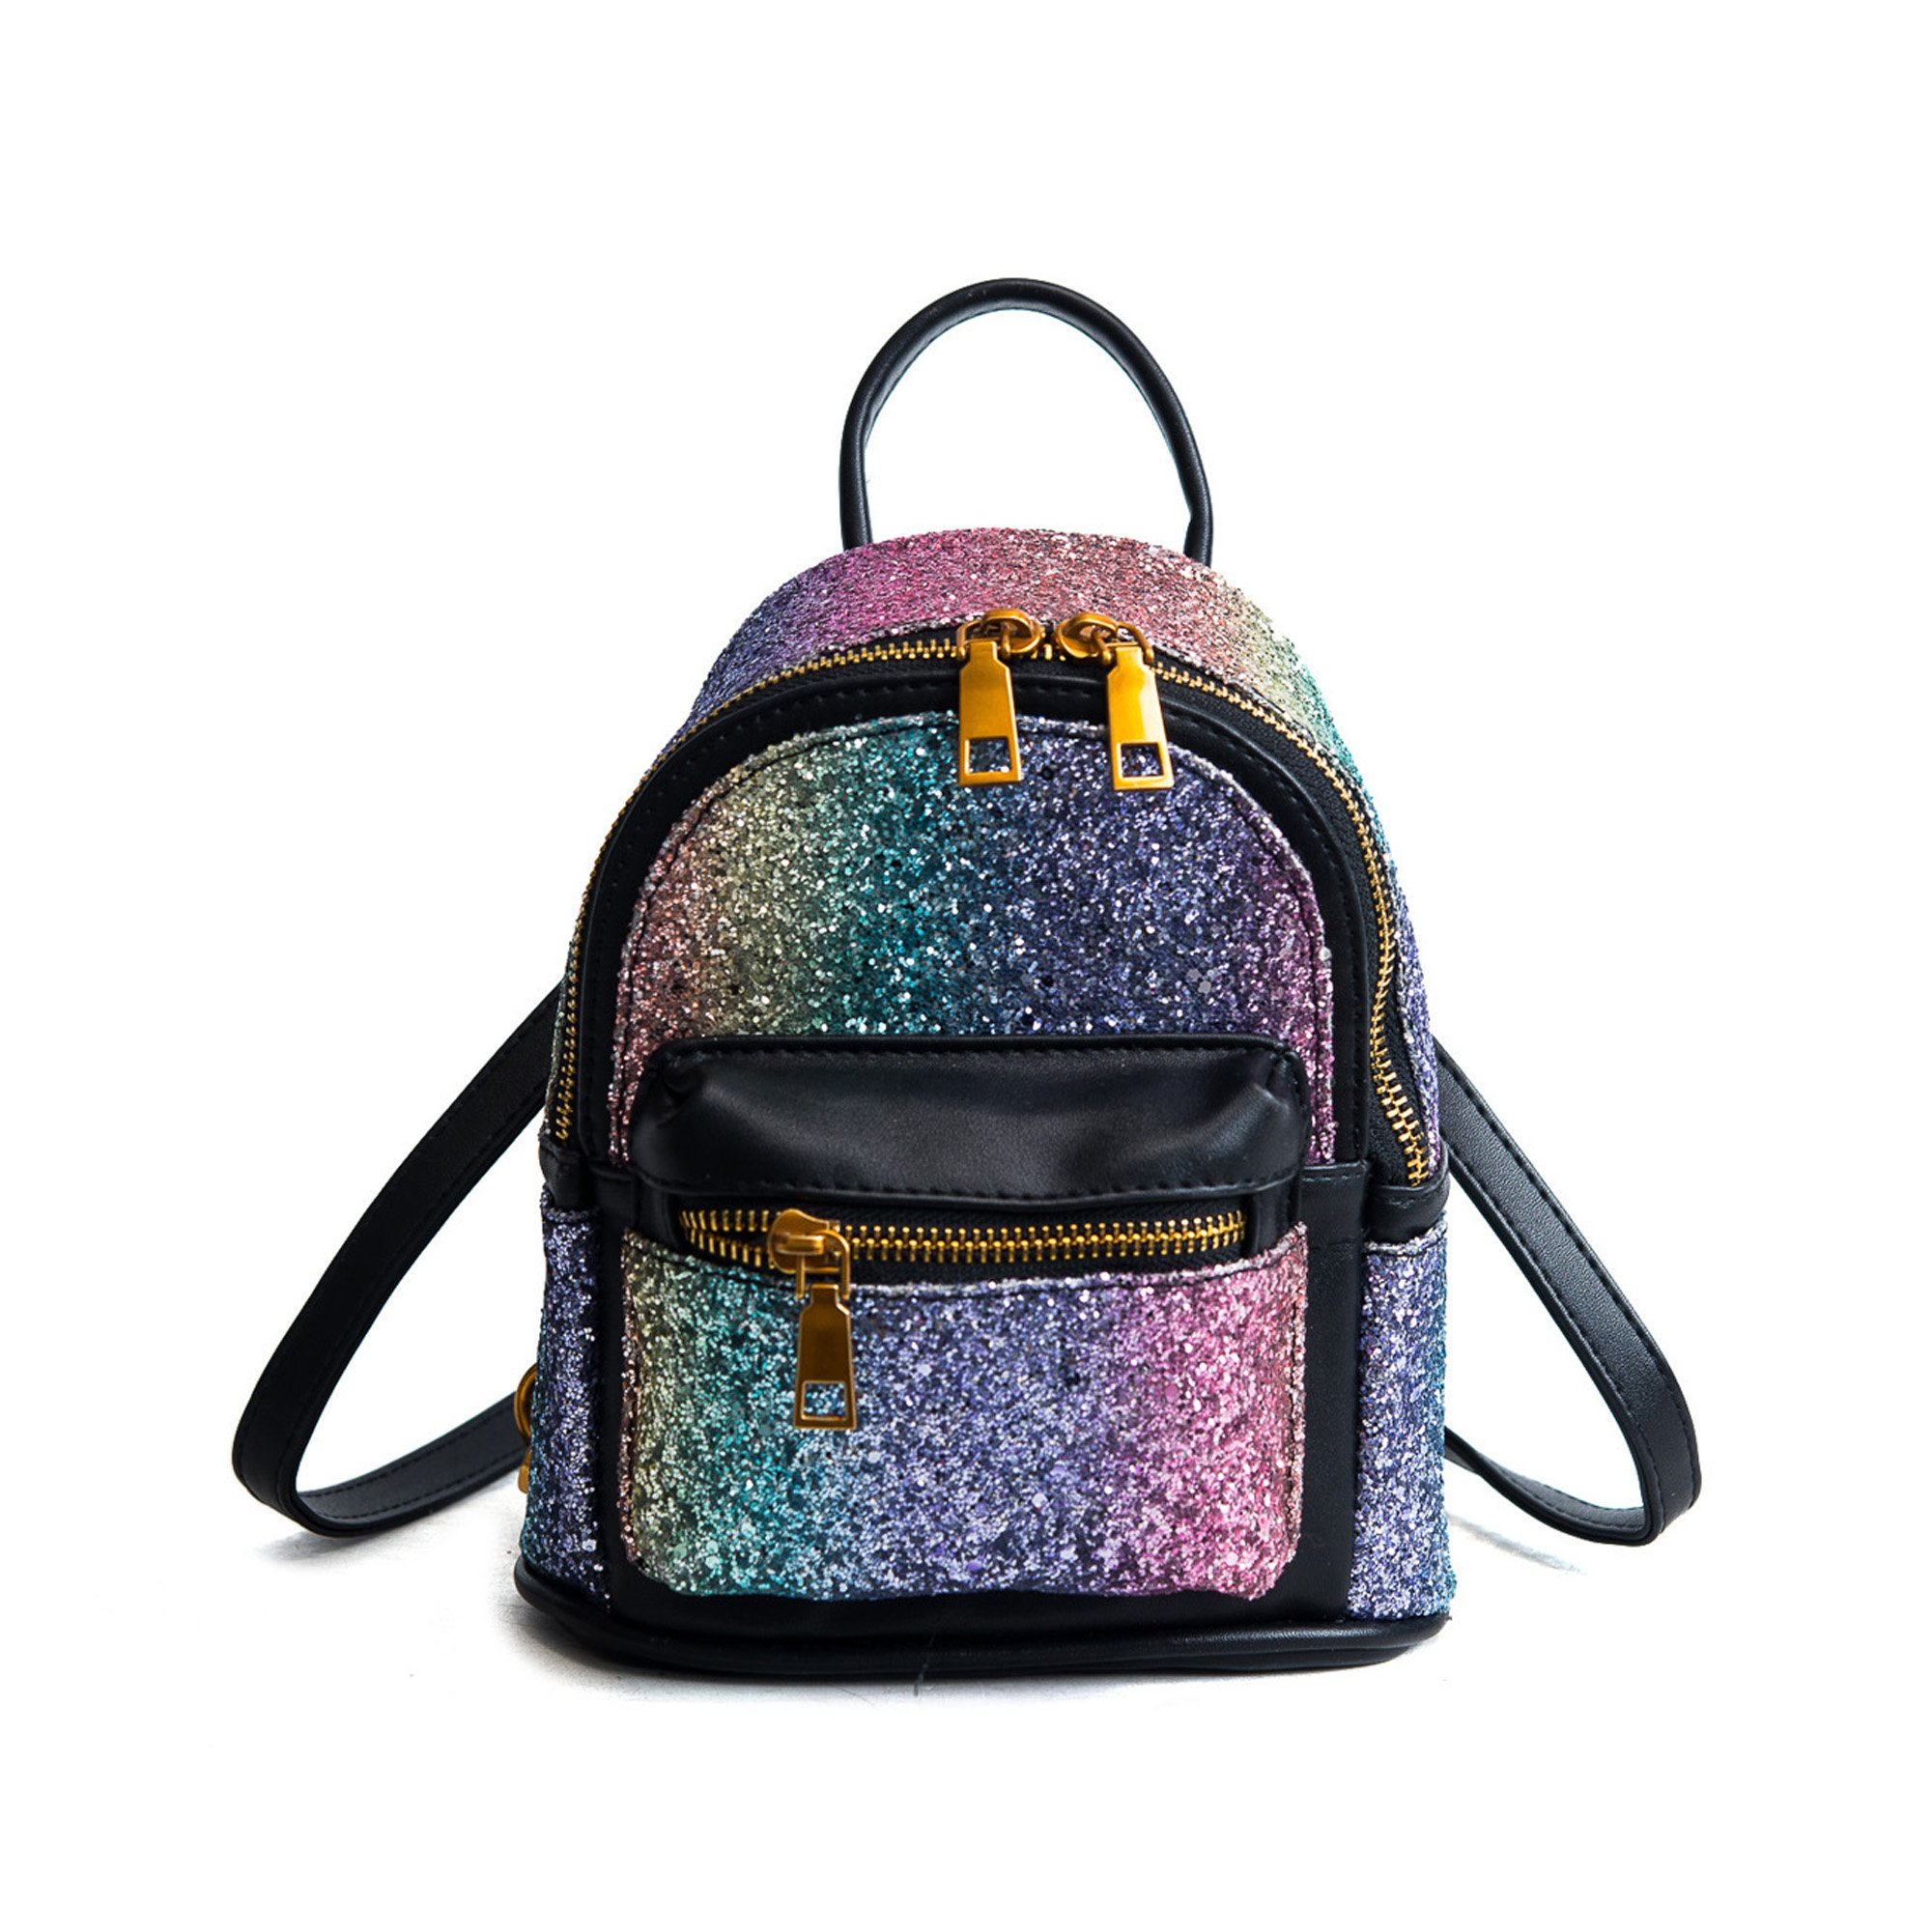 Girls Bling Mini Travel Backpack Kids Children School Bags Satchel Purses Daypack (black rainbow)